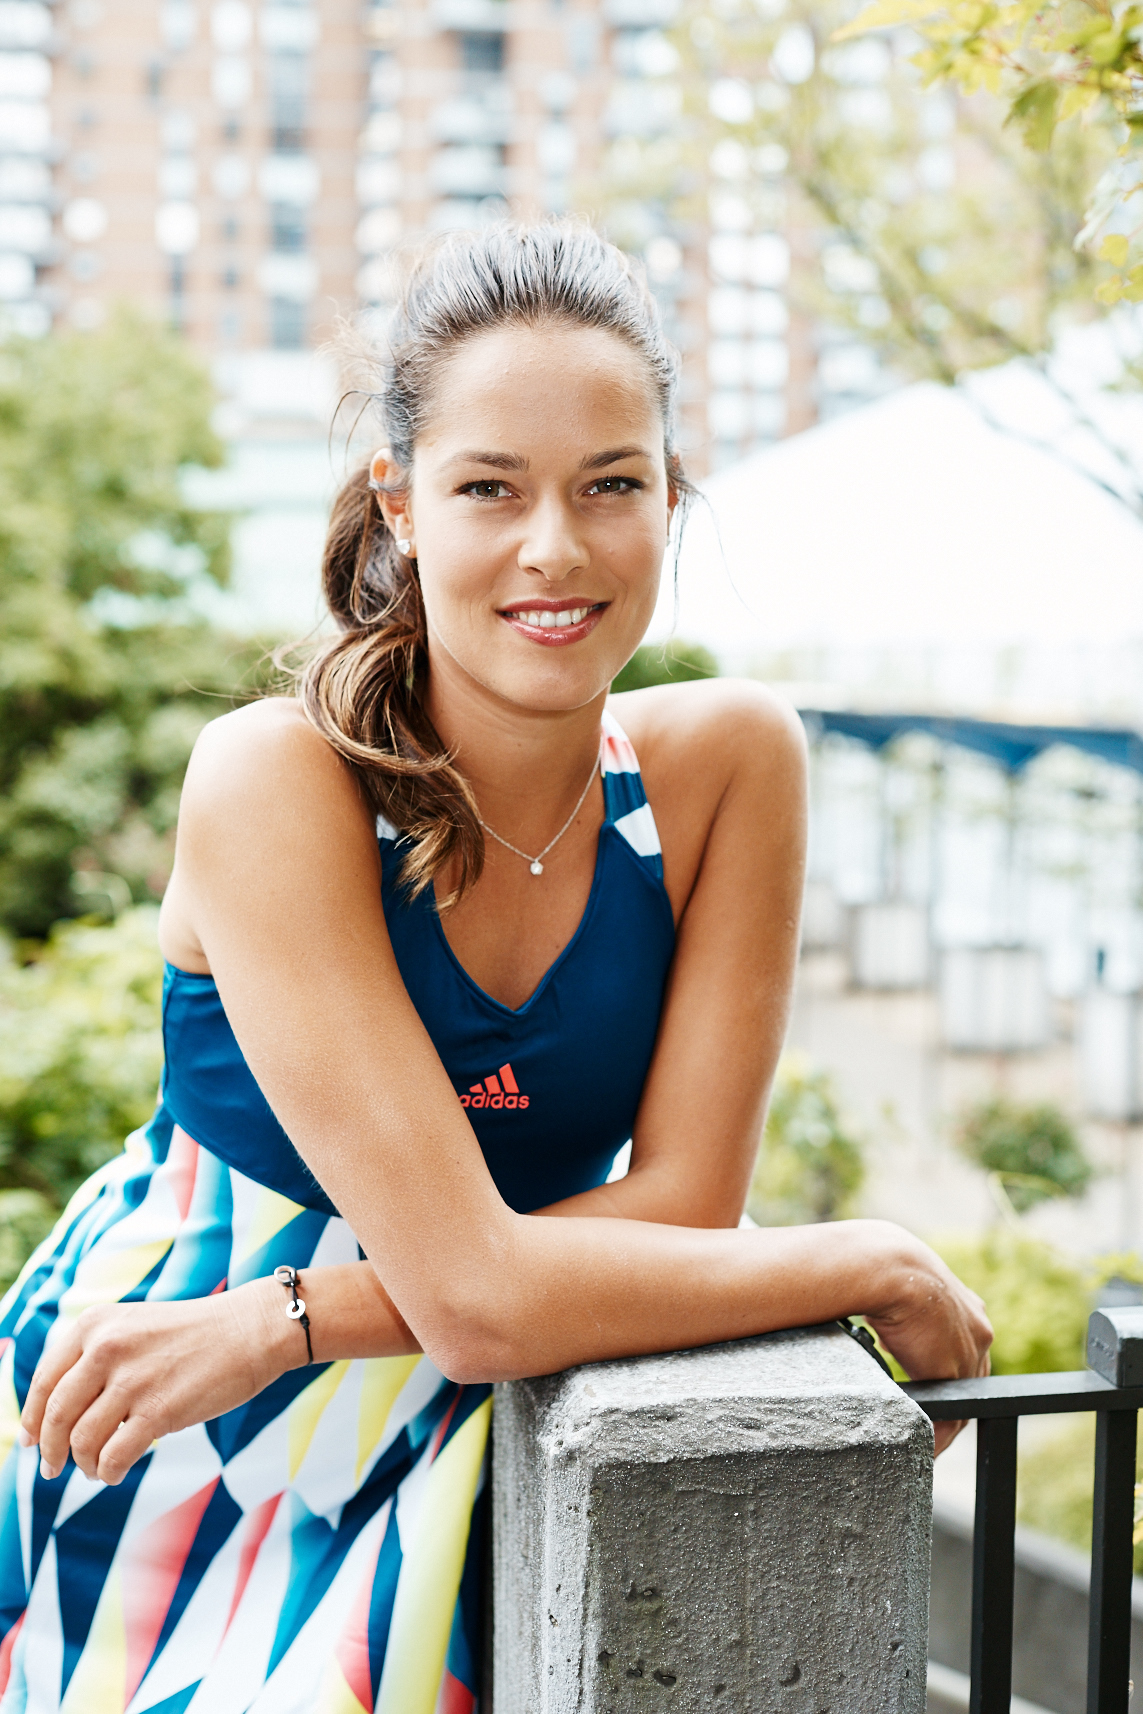 Ana Ivanovic Talks Beauty and Give Tennis Lessons